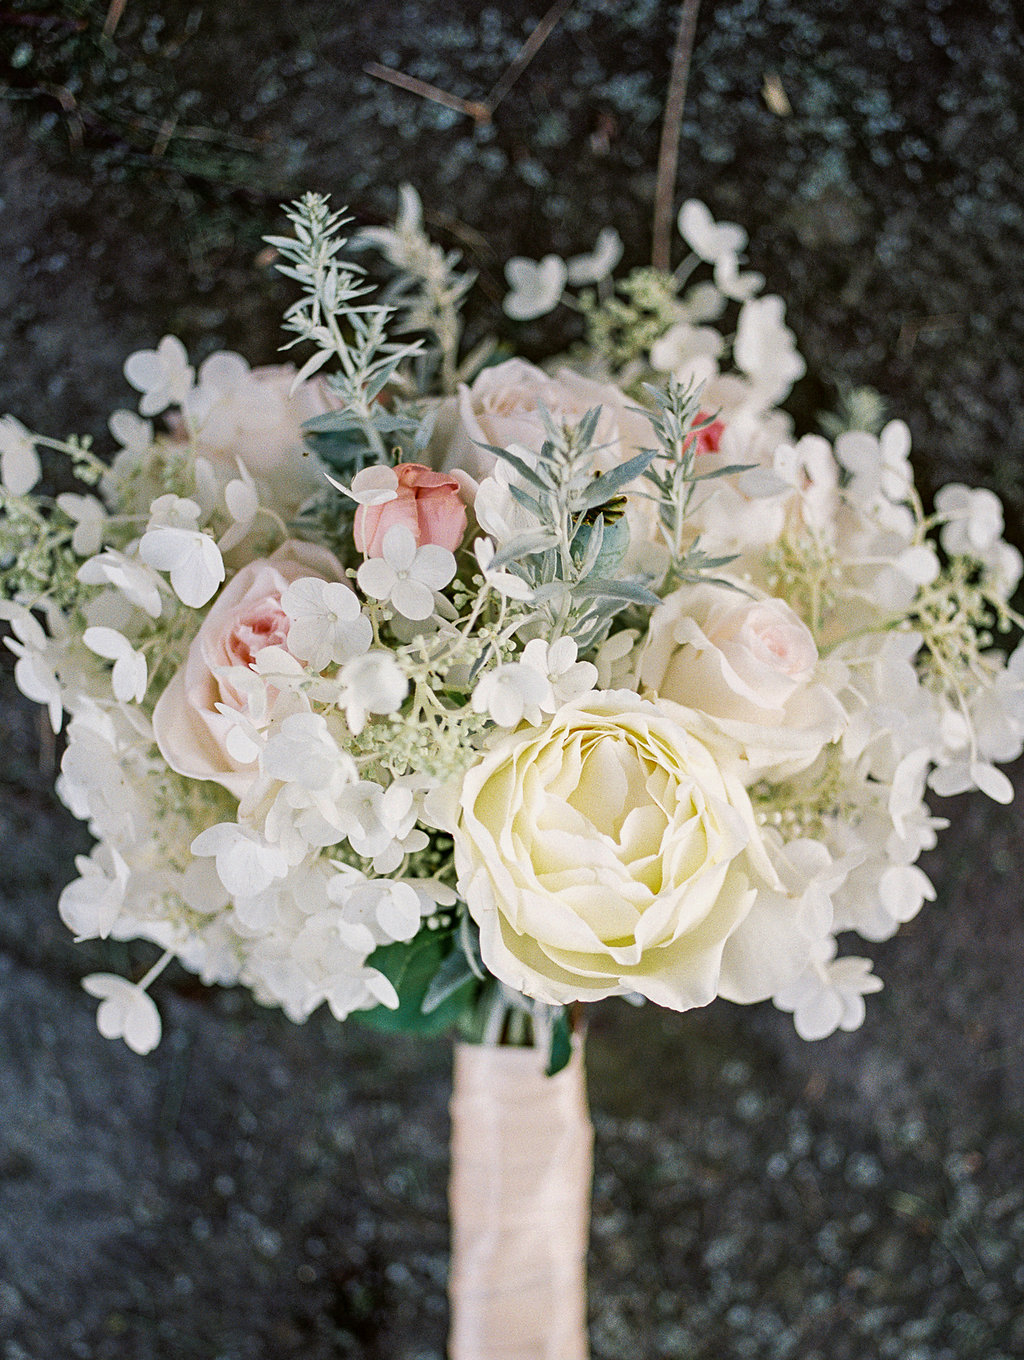 2016's Floral Design blew me away - including this beauty captured by Danielle Coons Photography